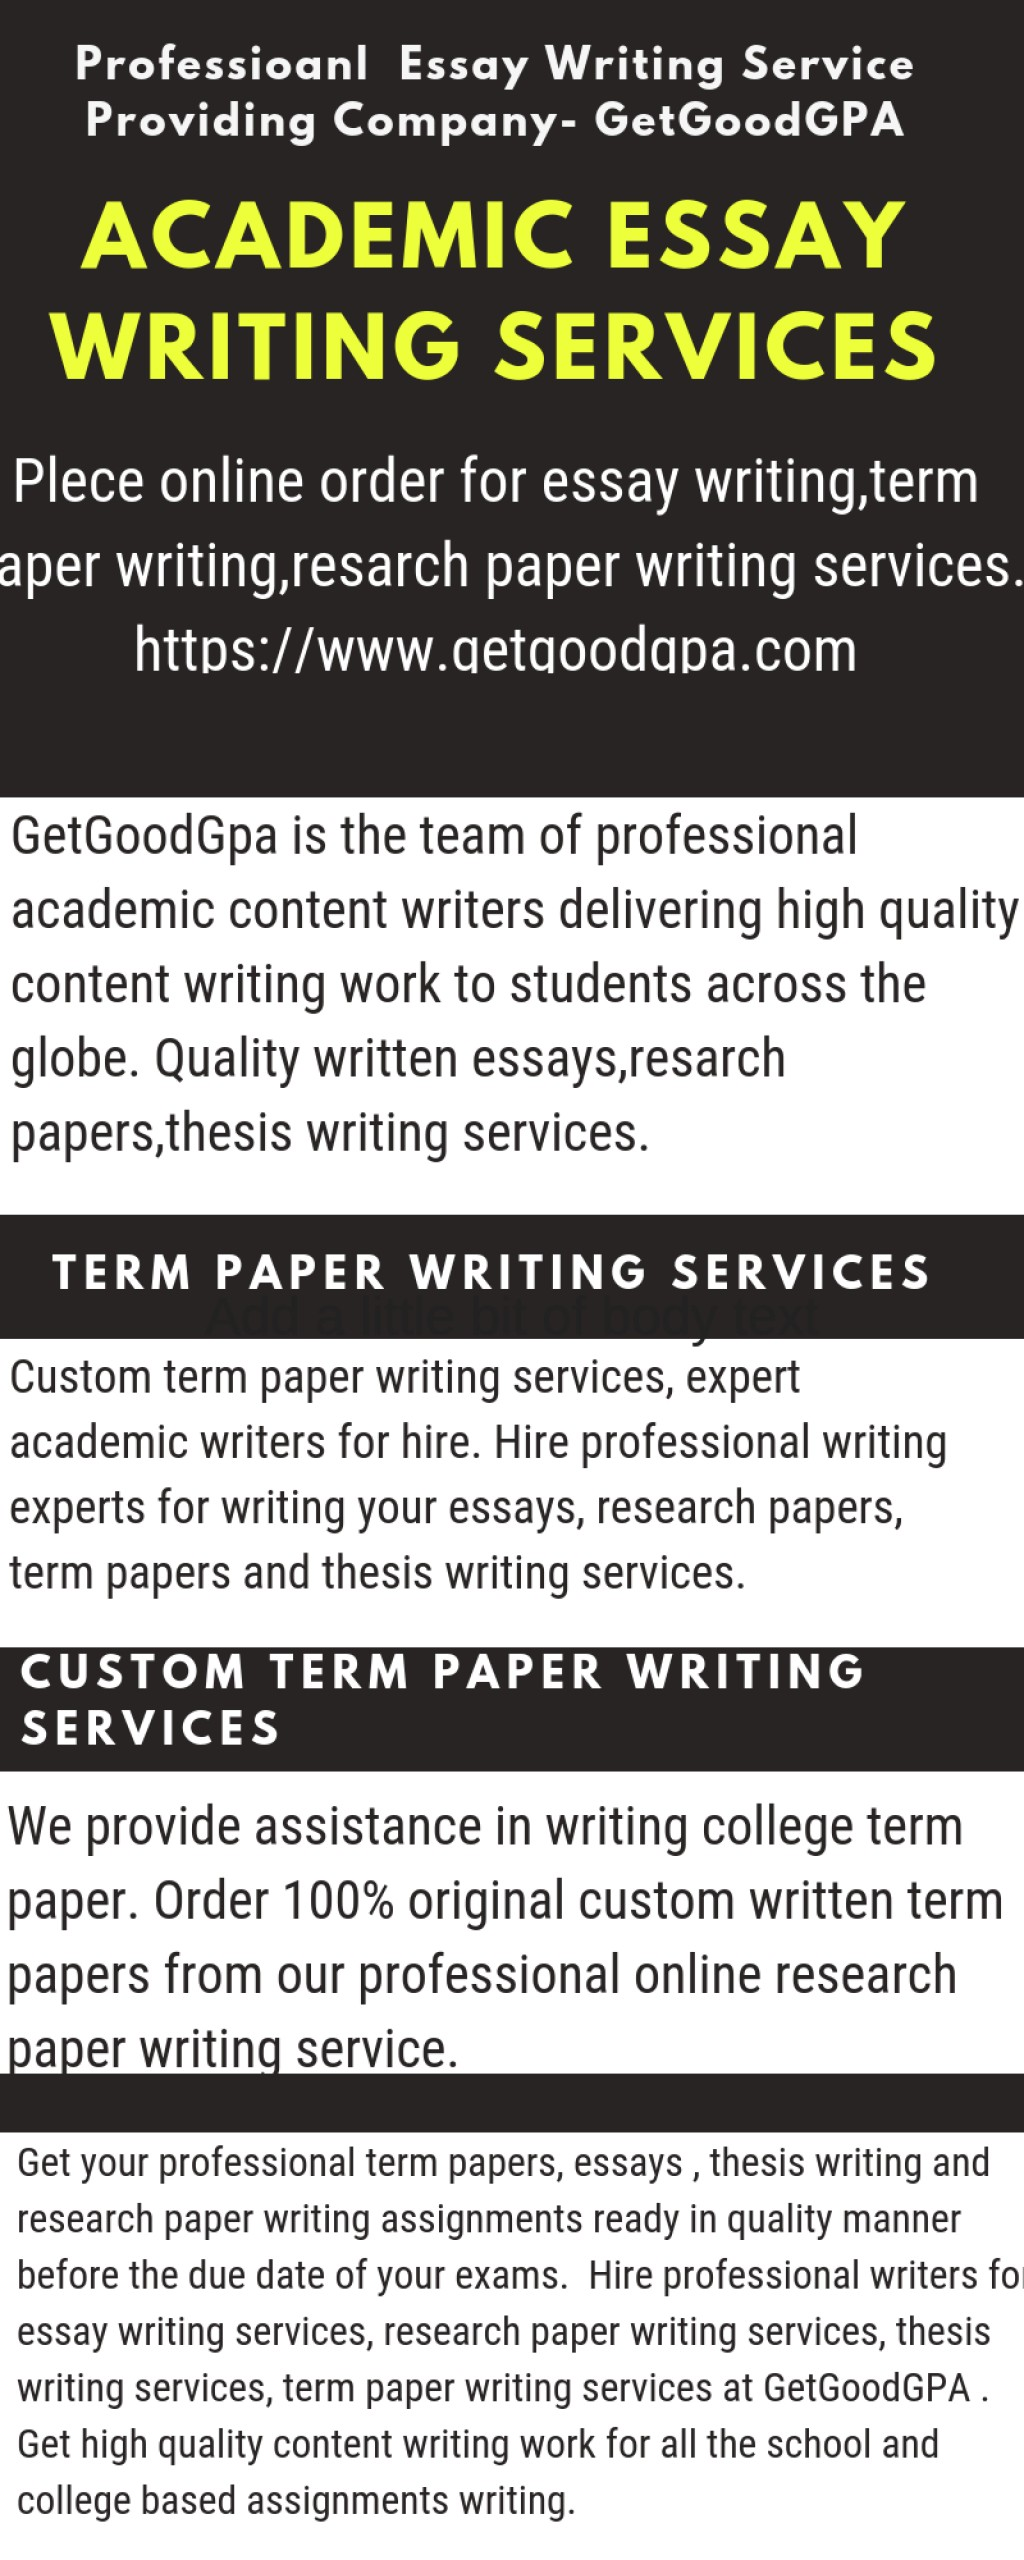 012 Research Paper Writing Archaicawful Services In Pakistan Mumbai Service Online Large